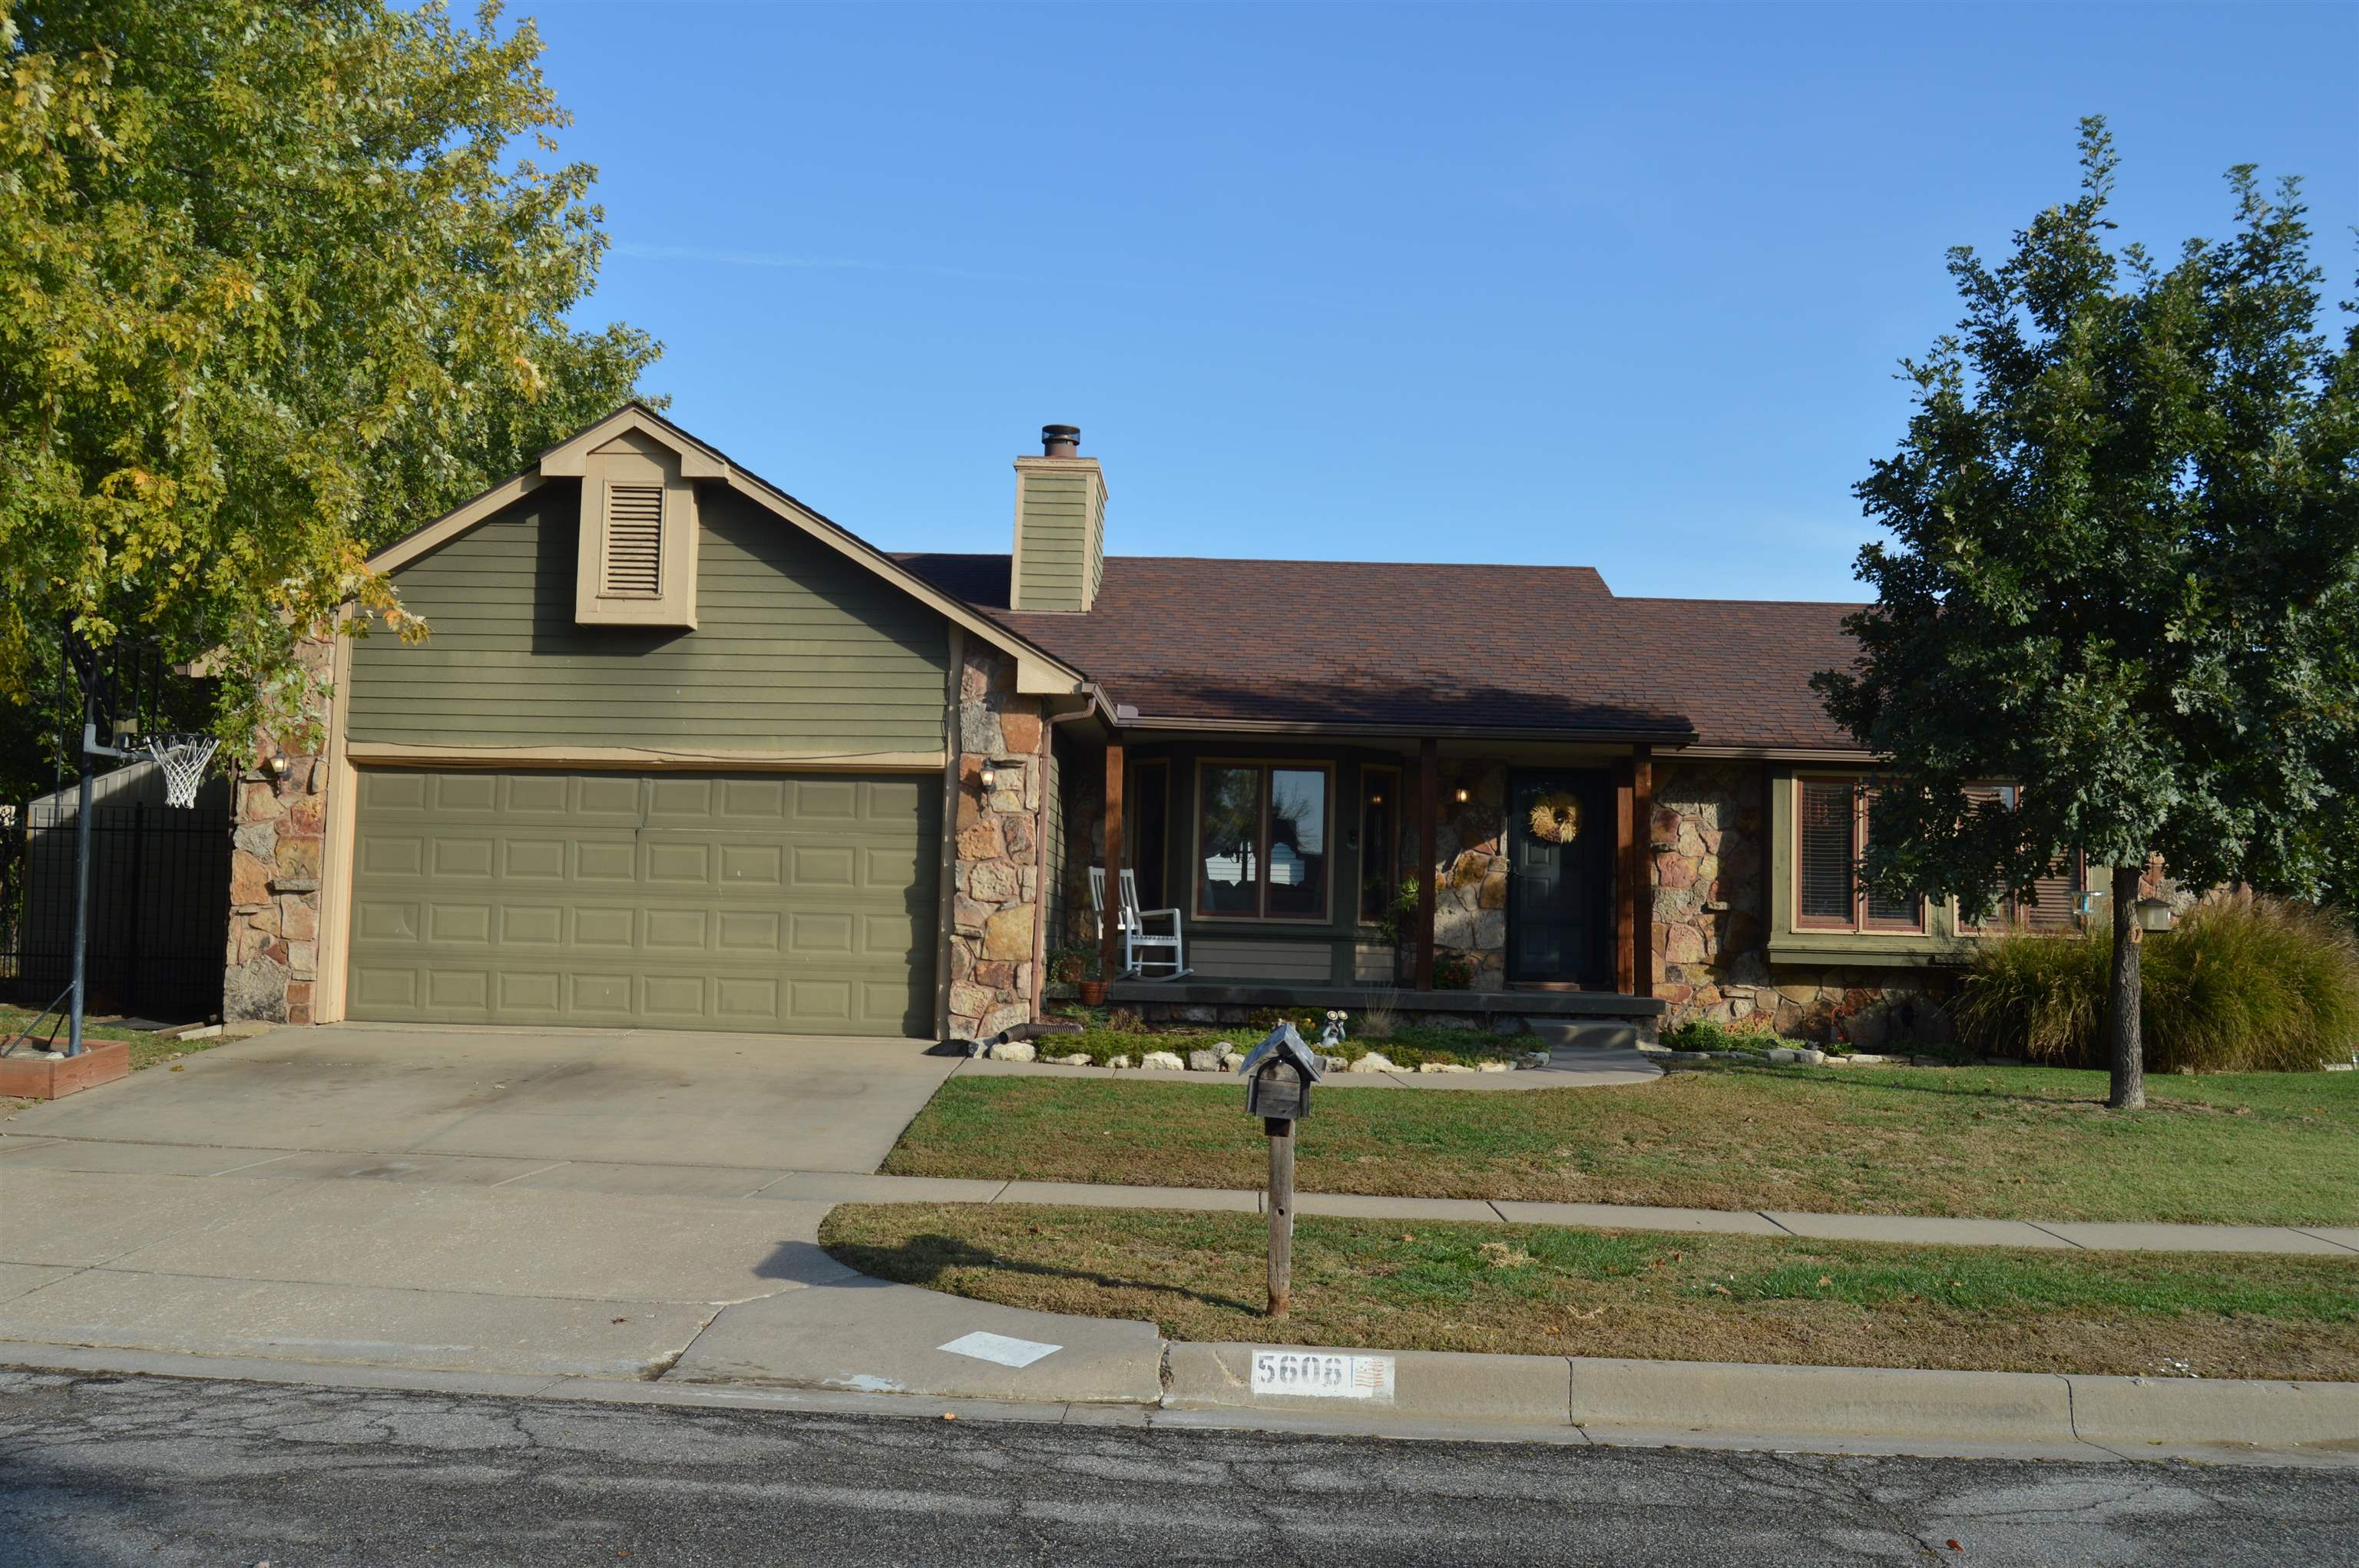 Welcome home to Bel Aire, this 4 bedroom 3 bath home is located on a corner lot with a wrought iron